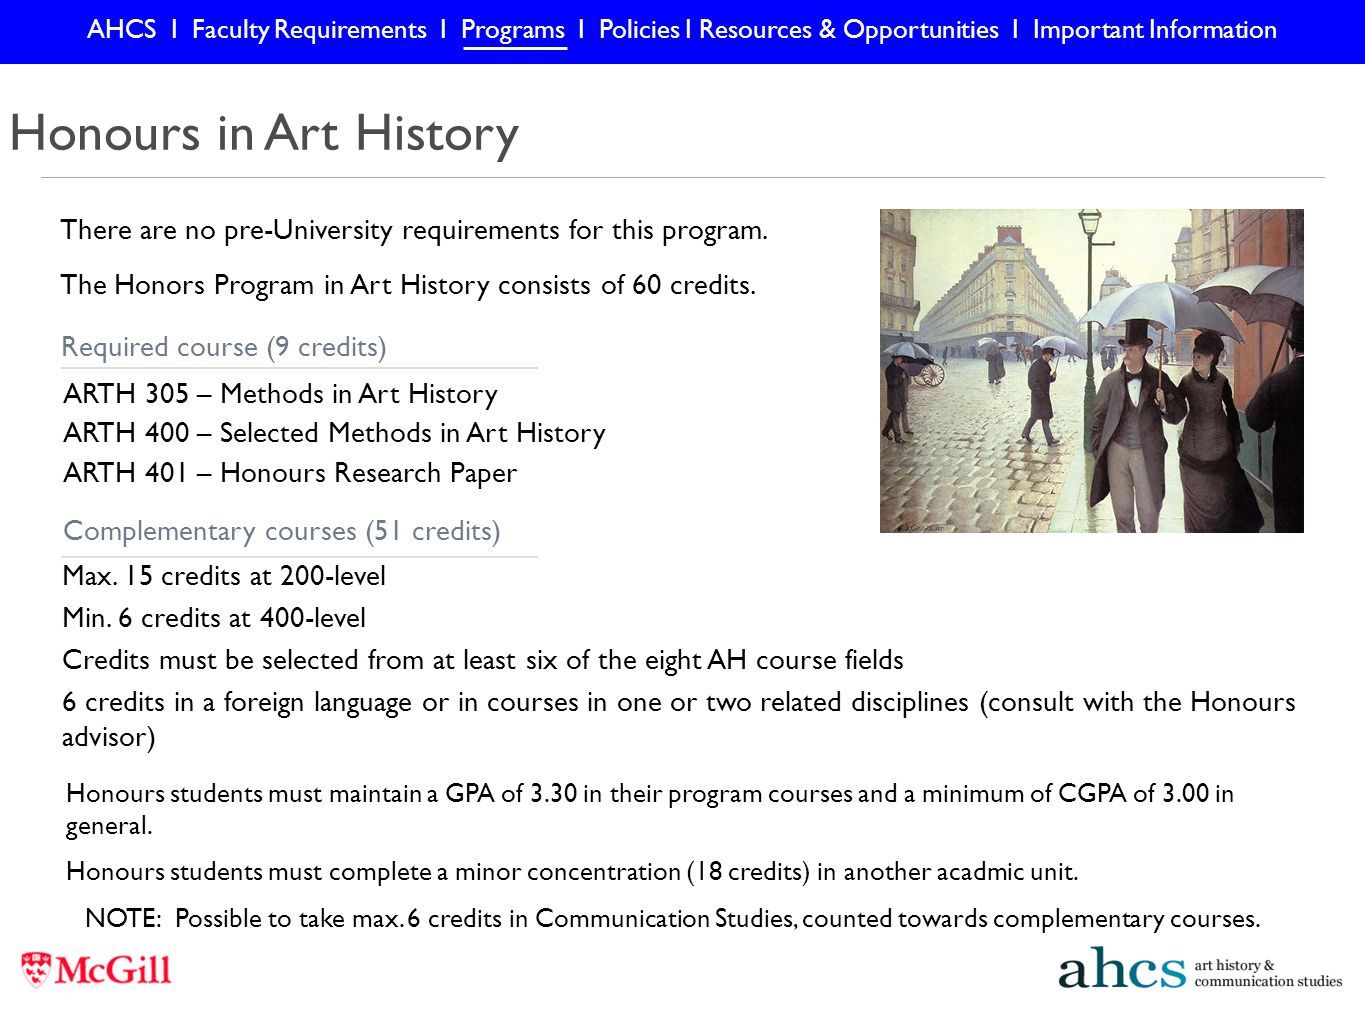 art history communication studies undergraduate orientation  honours in art history there are no pre university requirements for this program